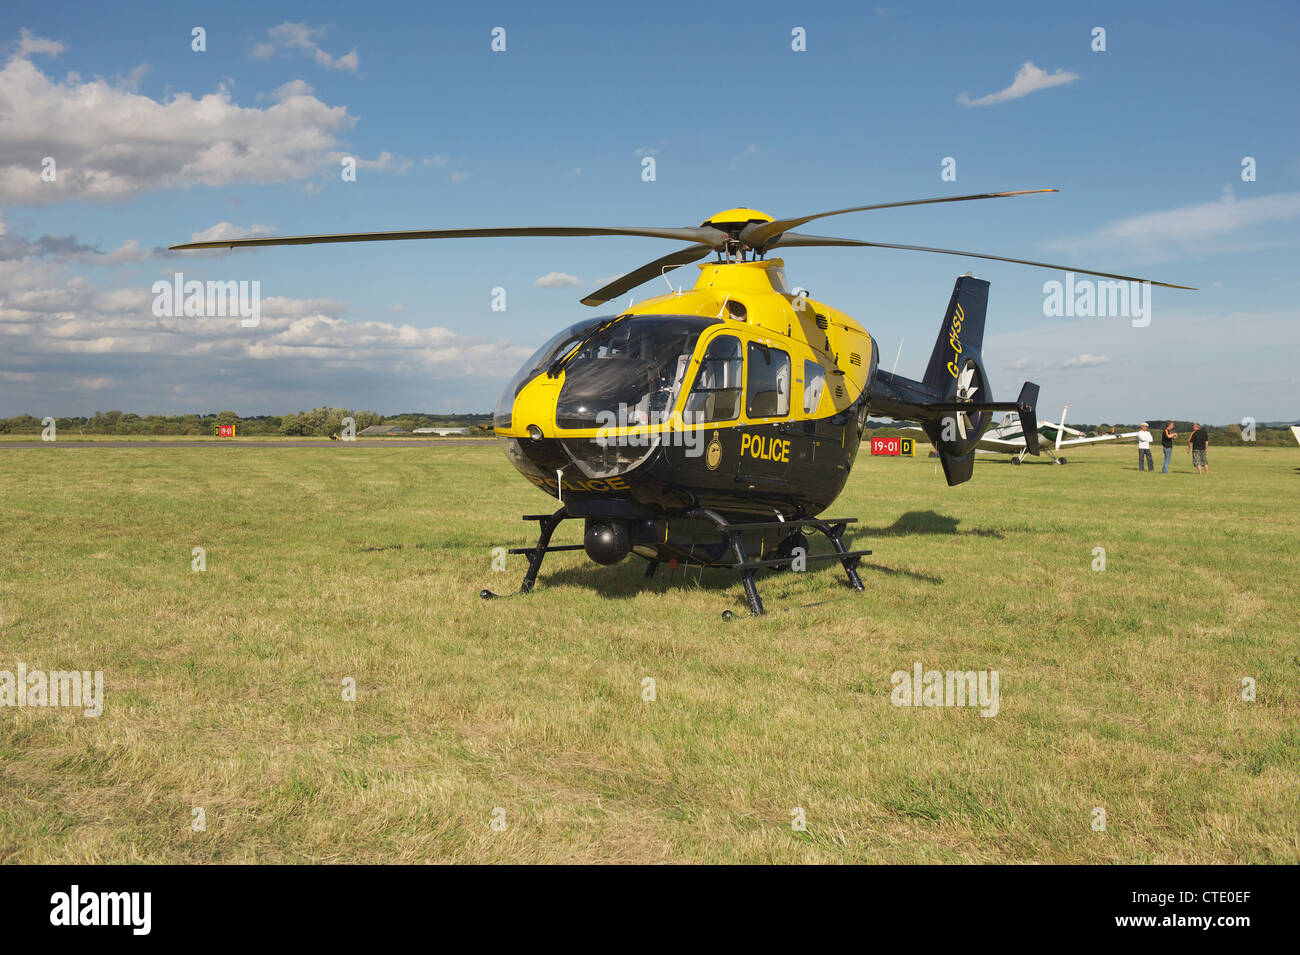 Thames Valley Police helicopter on display at 'Fly to the Past' air show at Kidlington, Oxford - Stock Image